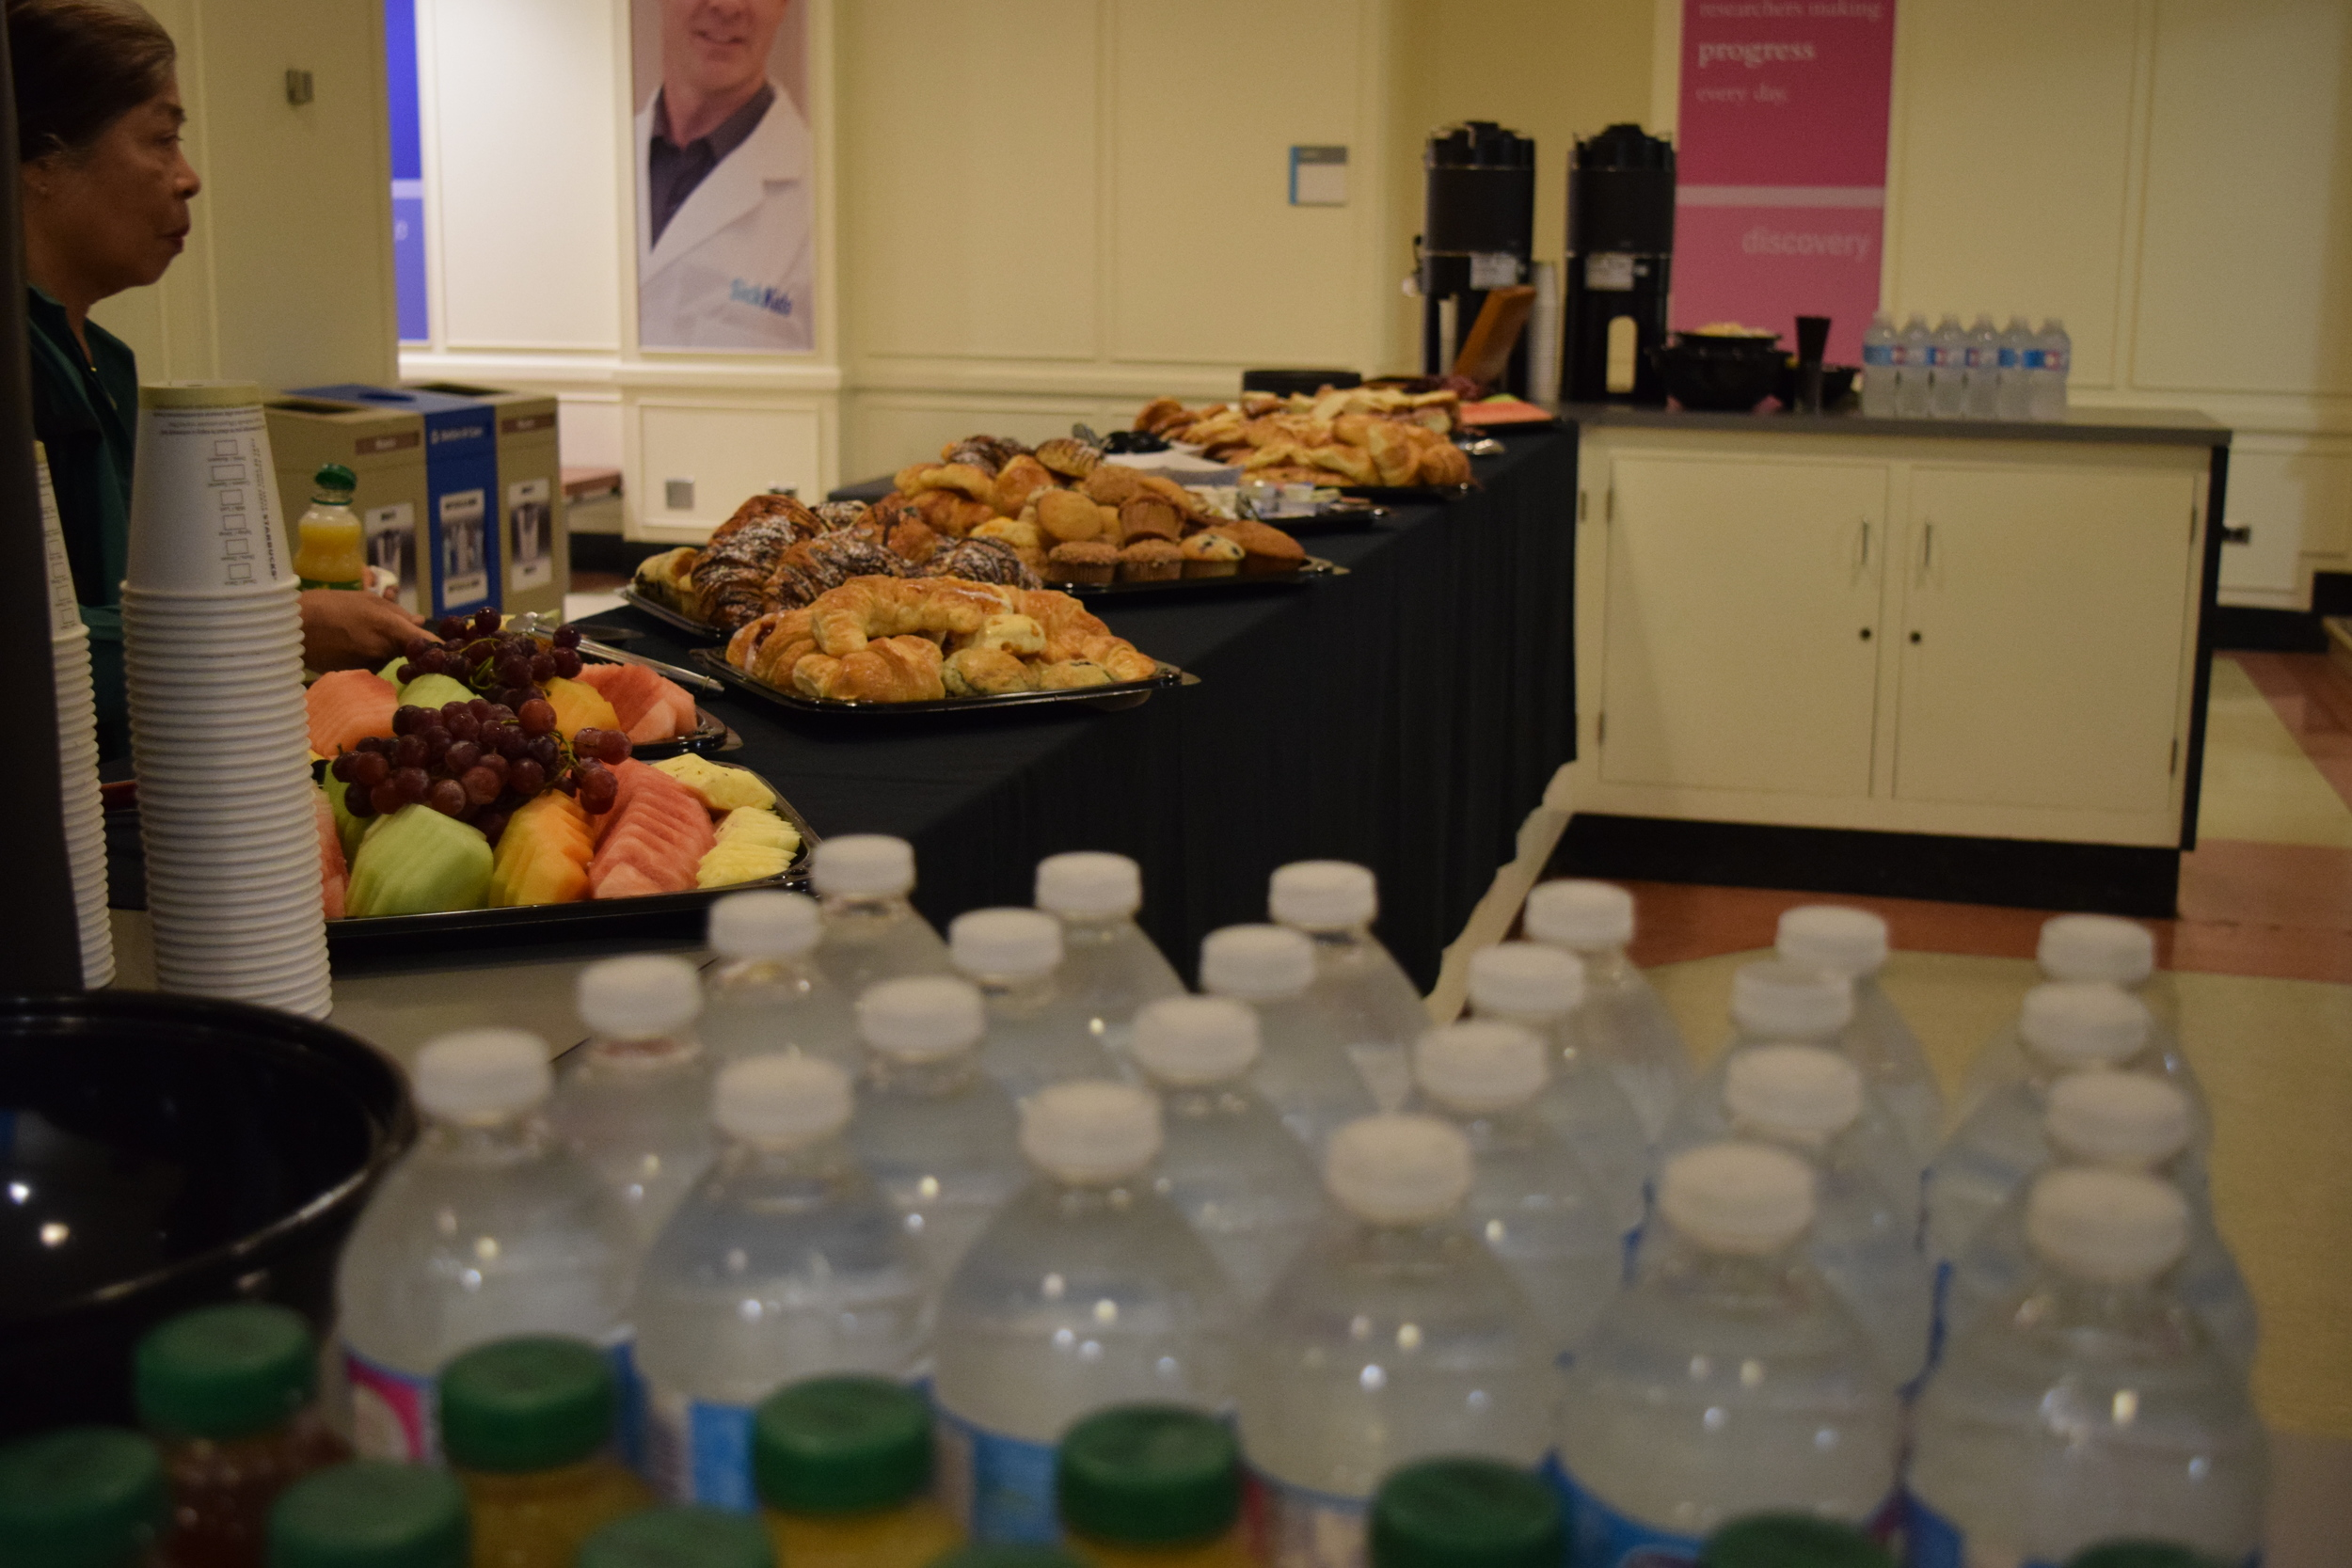 Food and refreshments